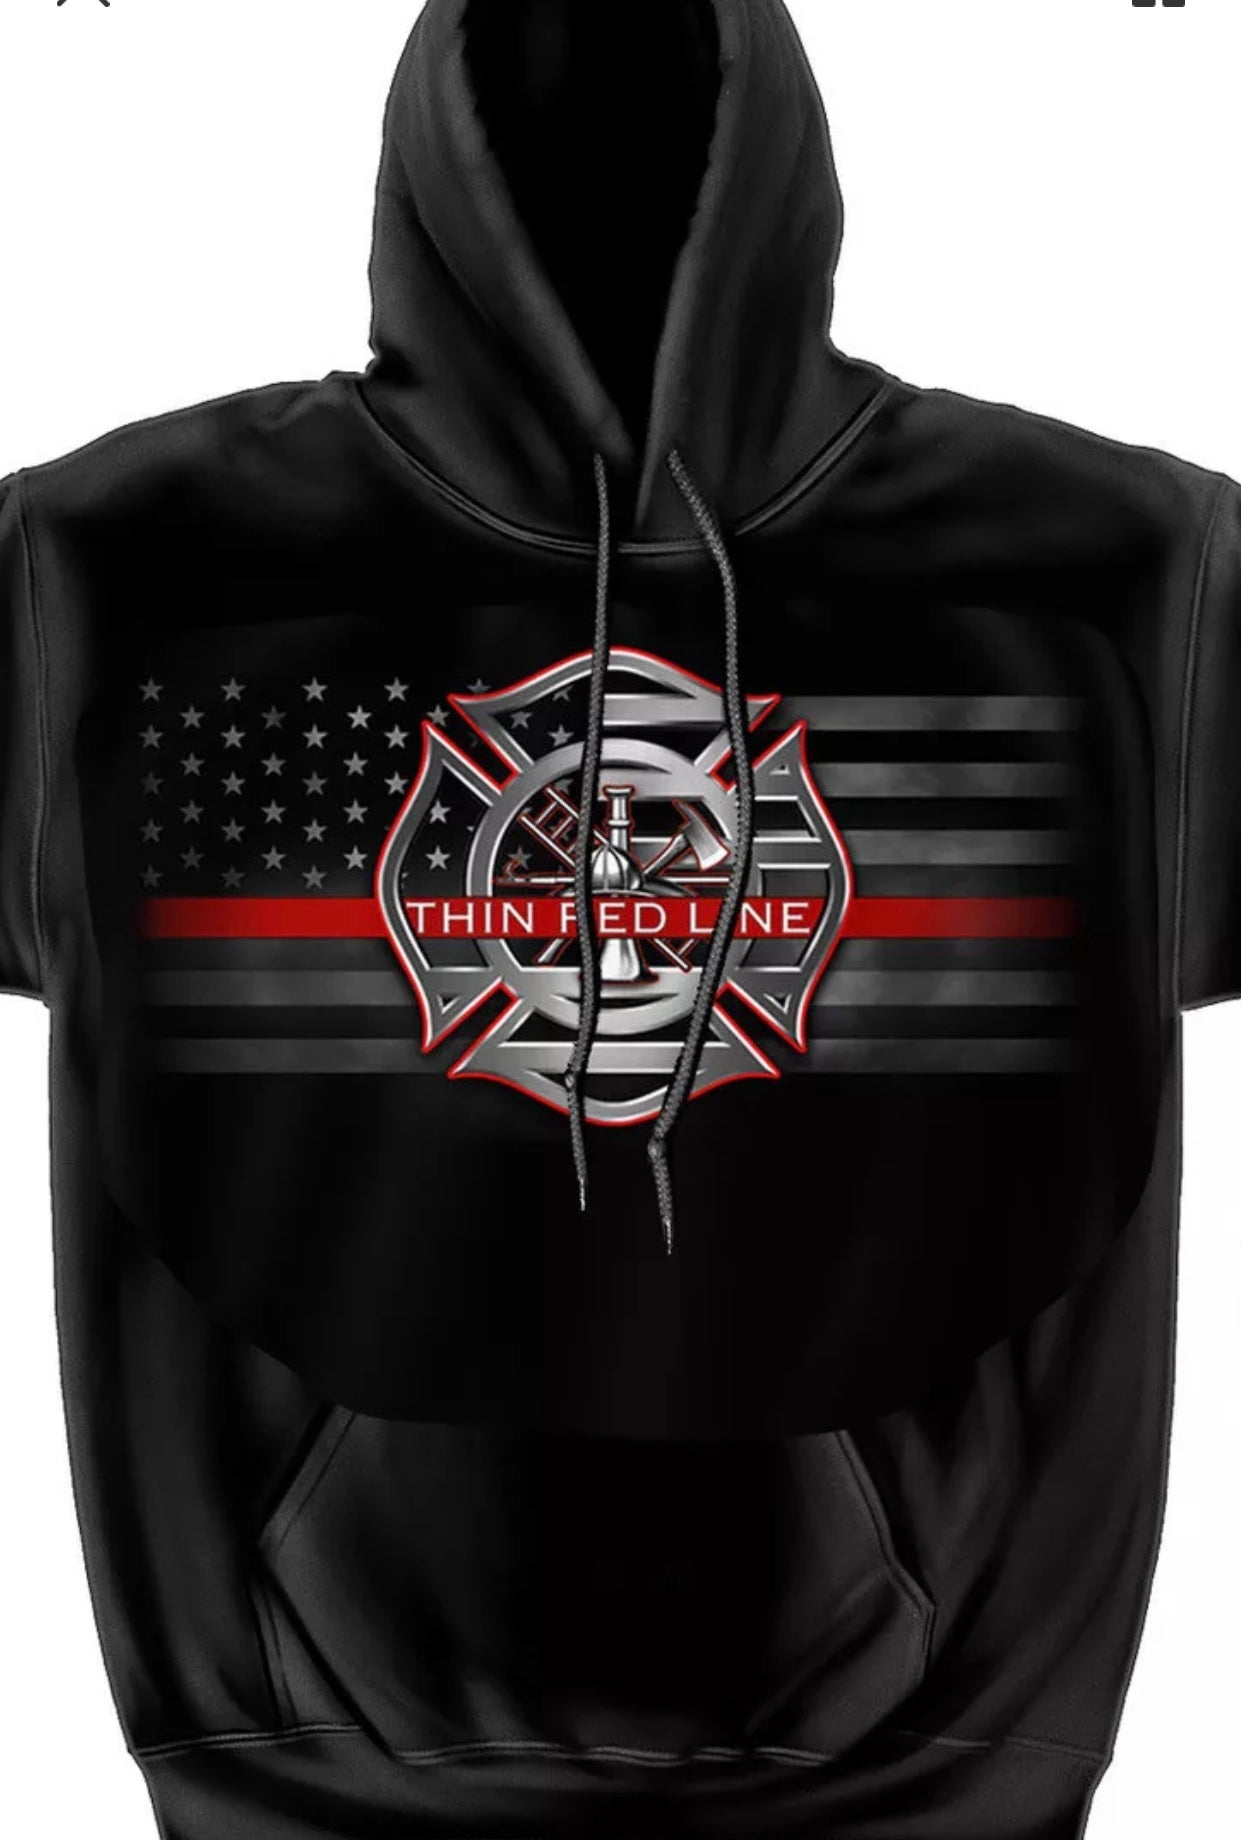 Stand For The Flag Kneel For The Fallen Firefighter Sweatshirt - The Wall Kids, Inc.